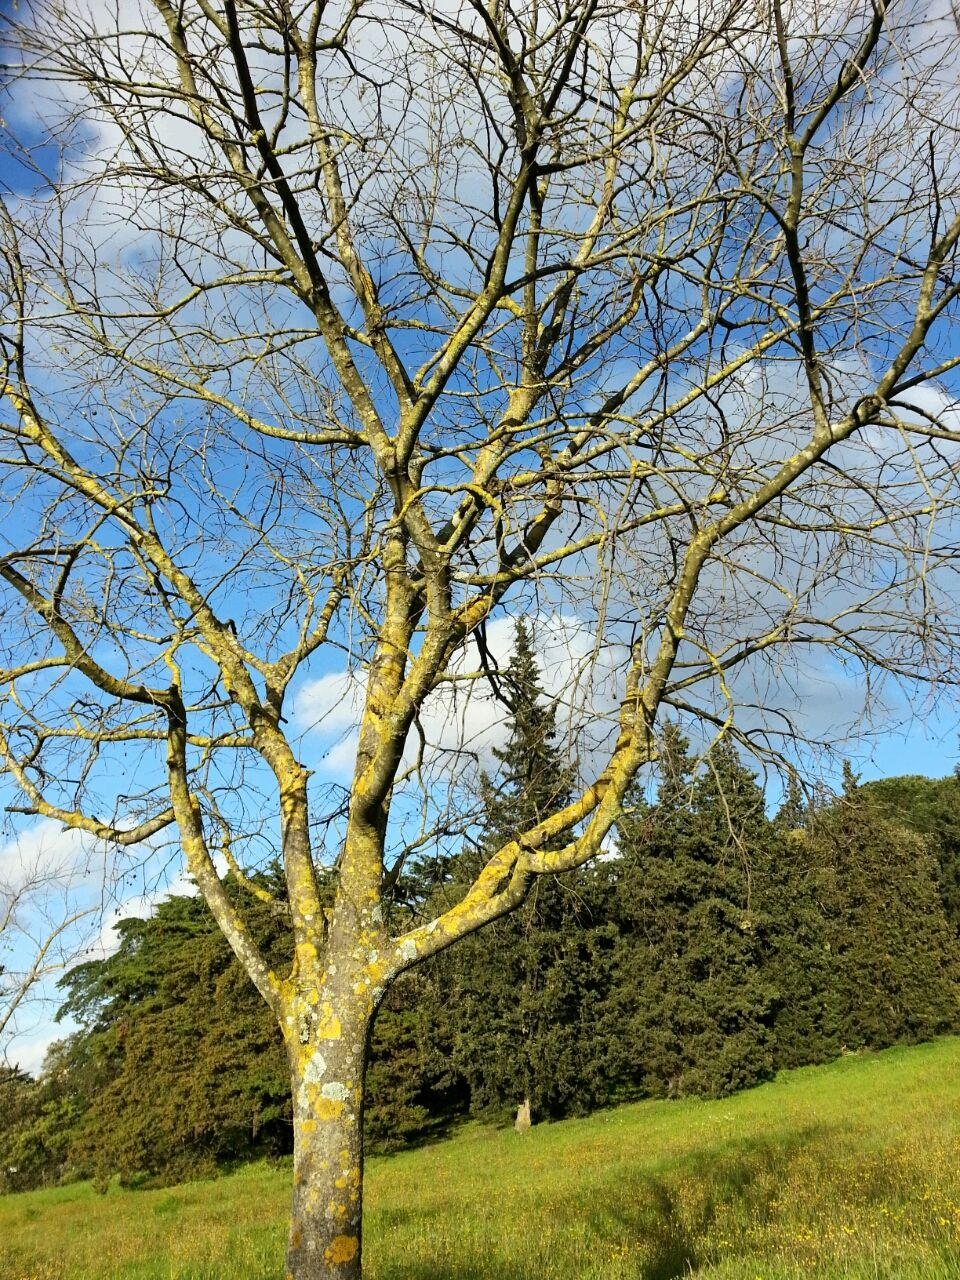 tree, bare tree, branch, green color, nature, tranquility, day, outdoors, beauty in nature, growth, no people, tranquil scene, landscape, sky, scenics, clear sky, grass